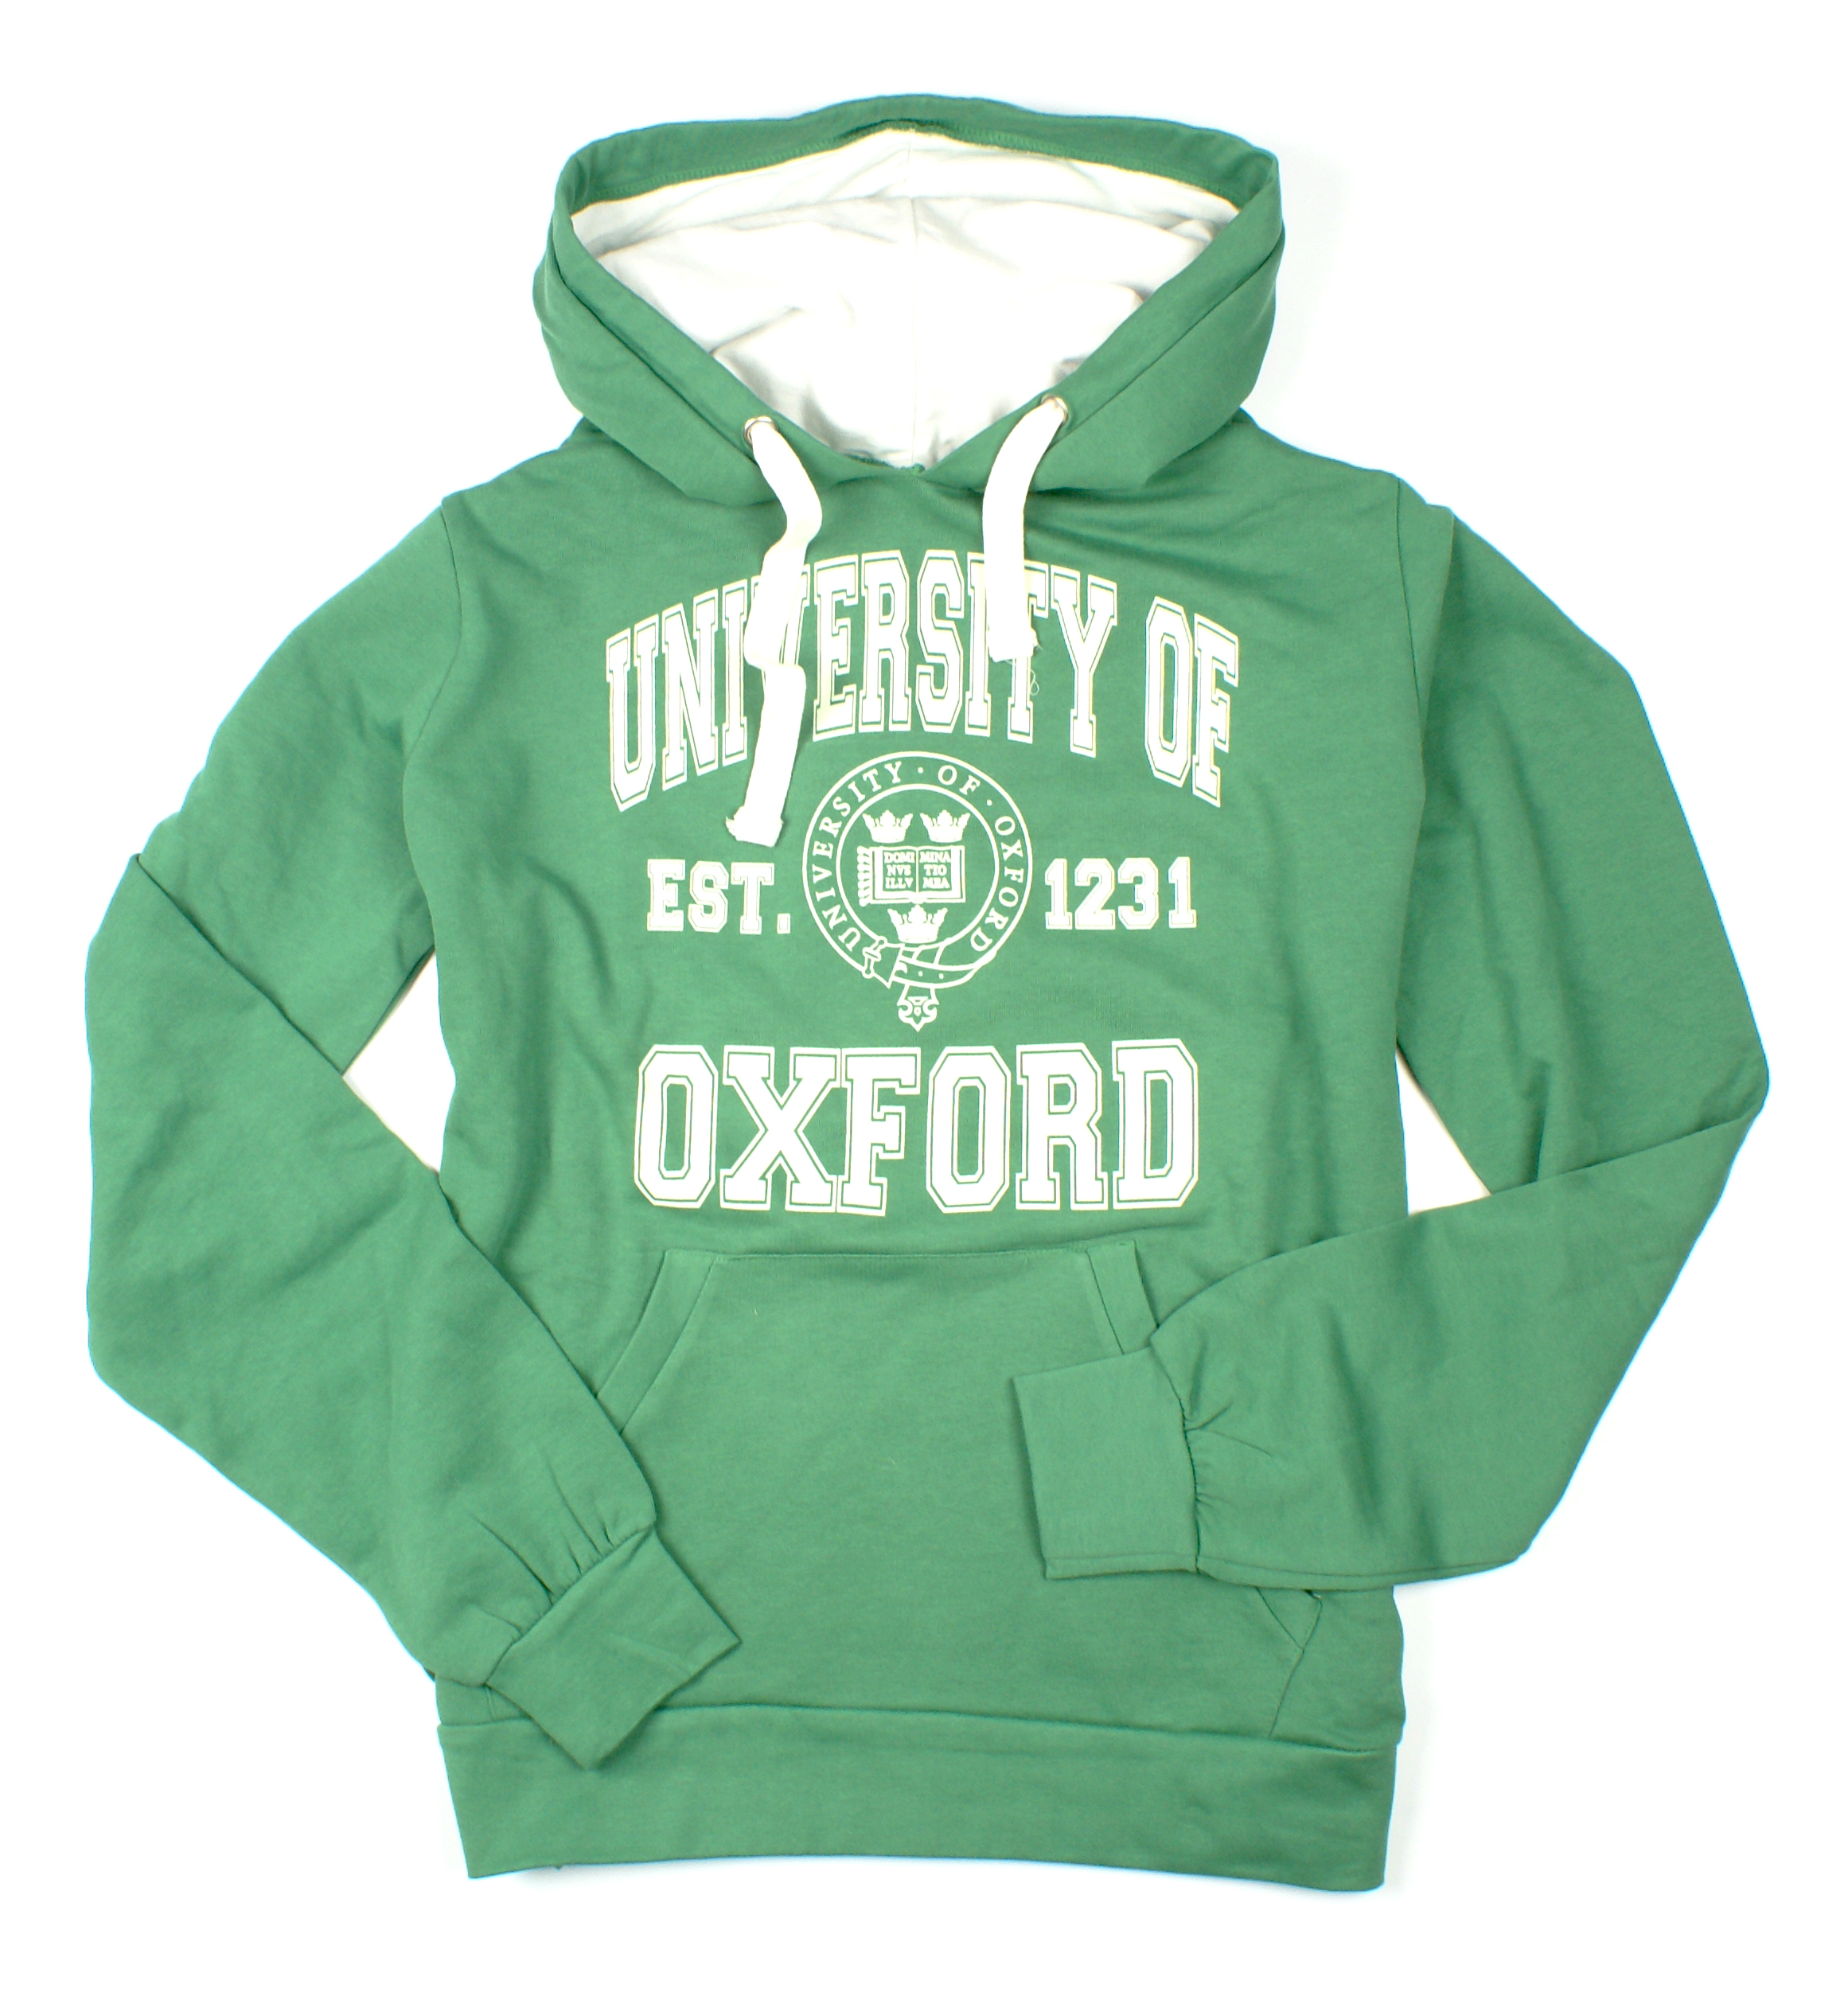 Shop our collection of college team hoodies and sweatshirts in men's, women's and kids' sizes and styles today and find the perfect one for any fan you're shopping for. There is no better way to gear up for your school's games and the colder weather than with a new NCAA college hoodie or sweatshirt from Fanatics.